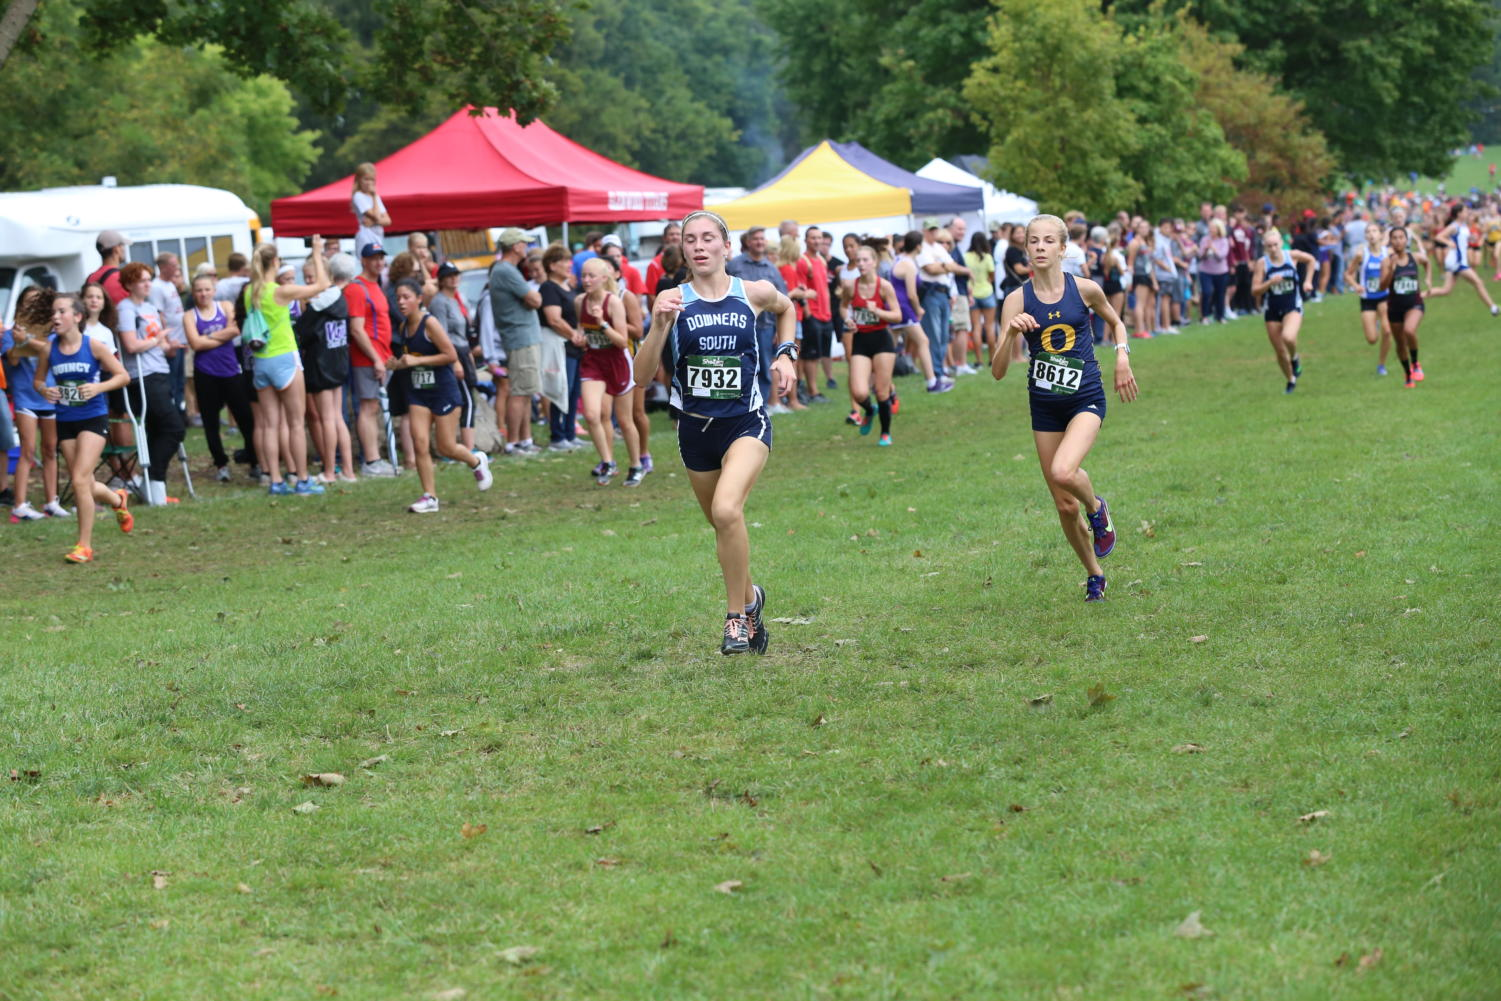 Brenna Cohoon finishes just missing a personal best at Detweiller.